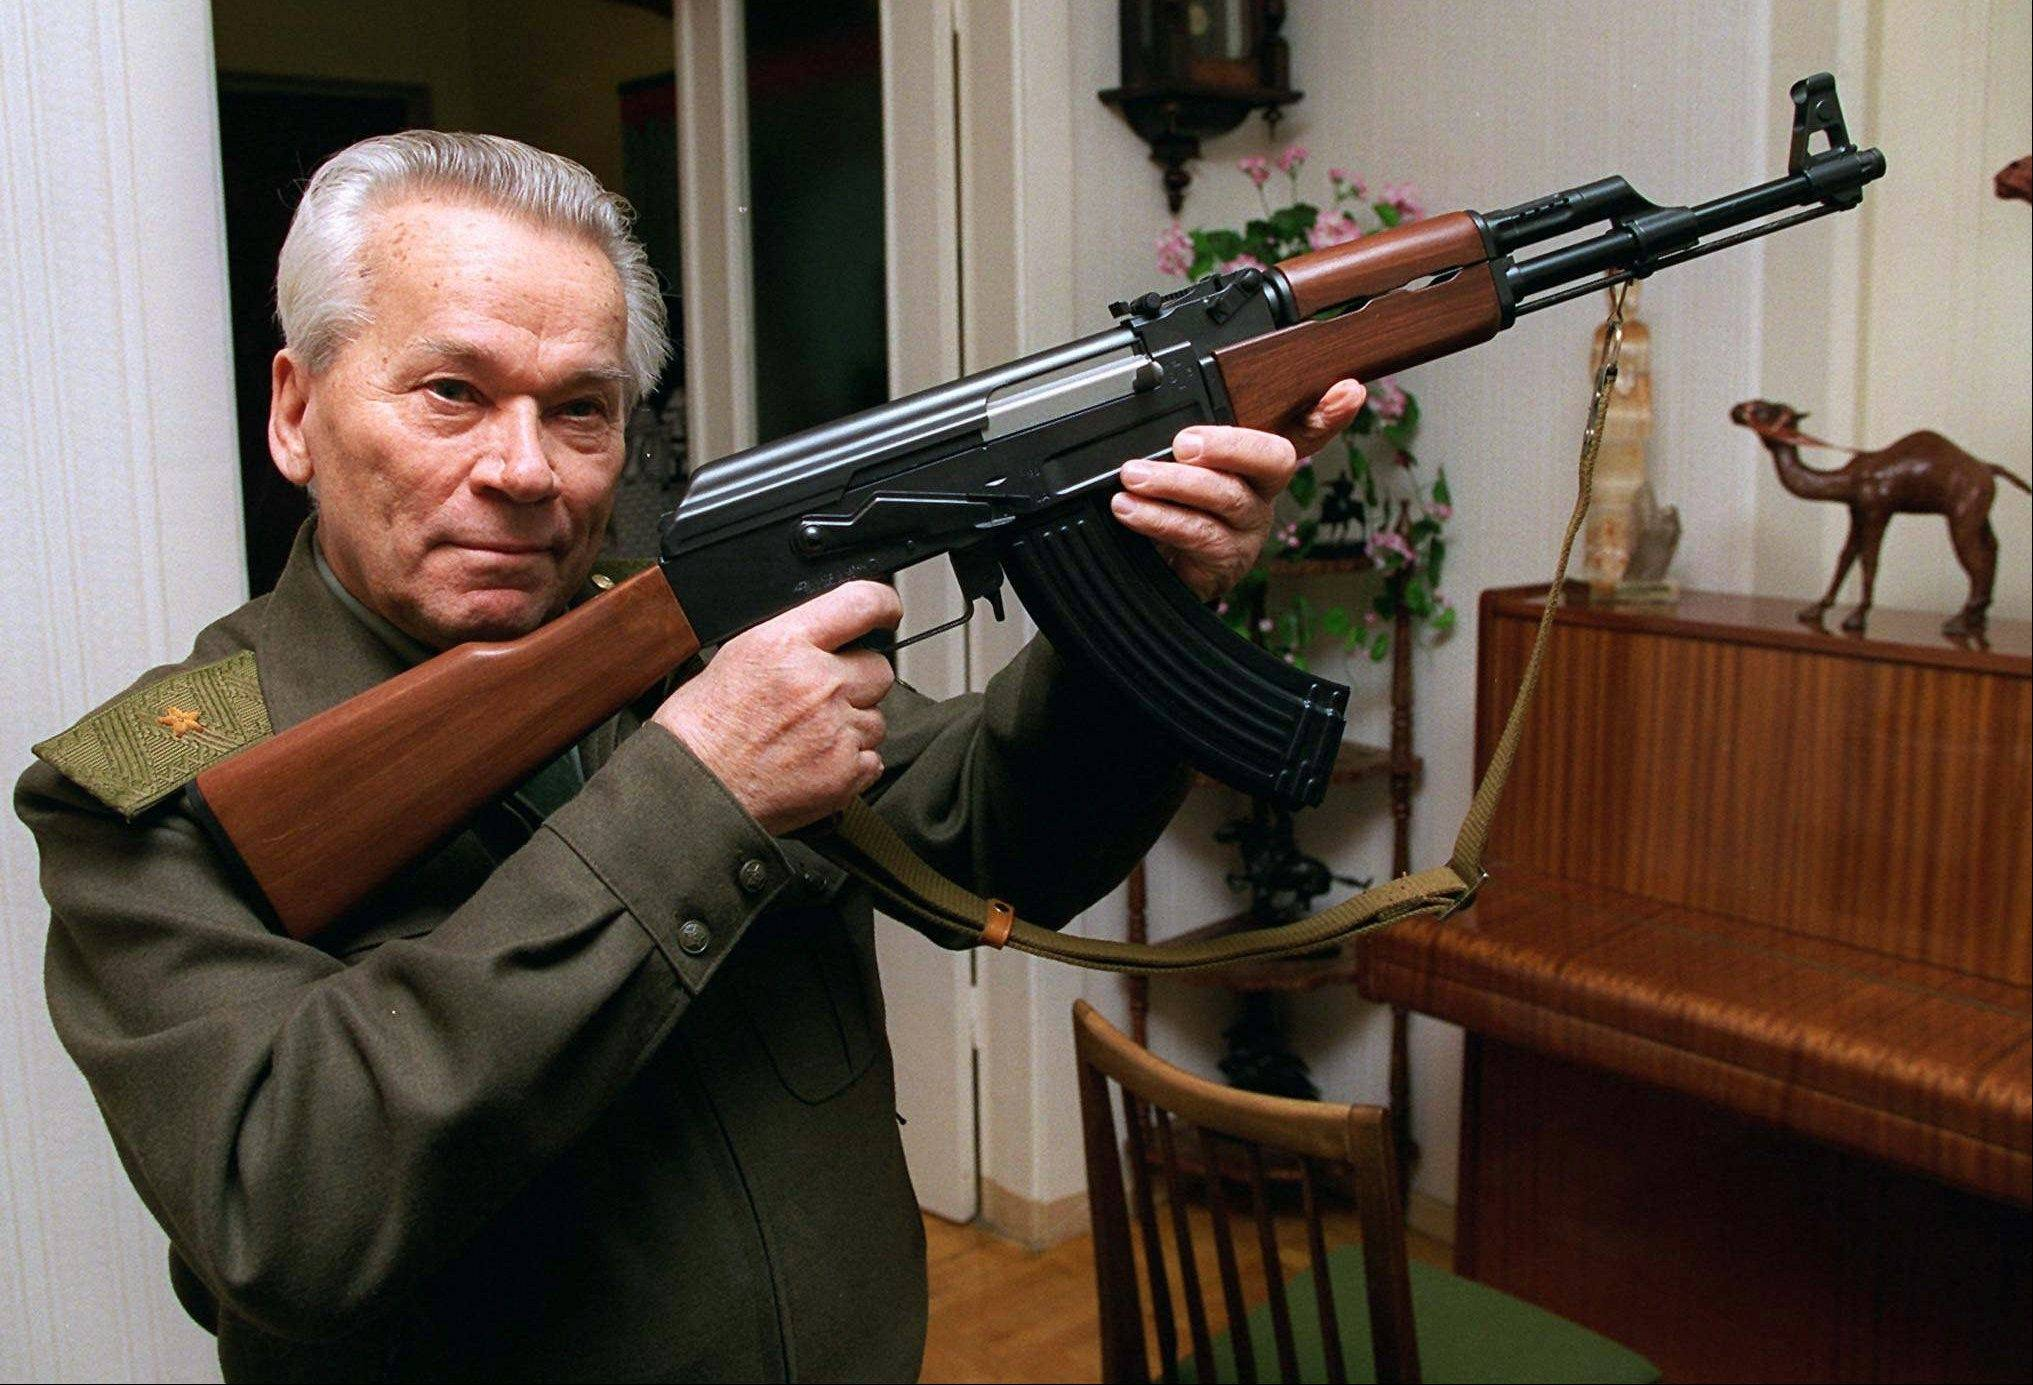 Mikhail Kalashnikov shows a model of his world-famous AK-47 assault rifle at his home in the Ural Mountain city of Izhevsk in October 1997.